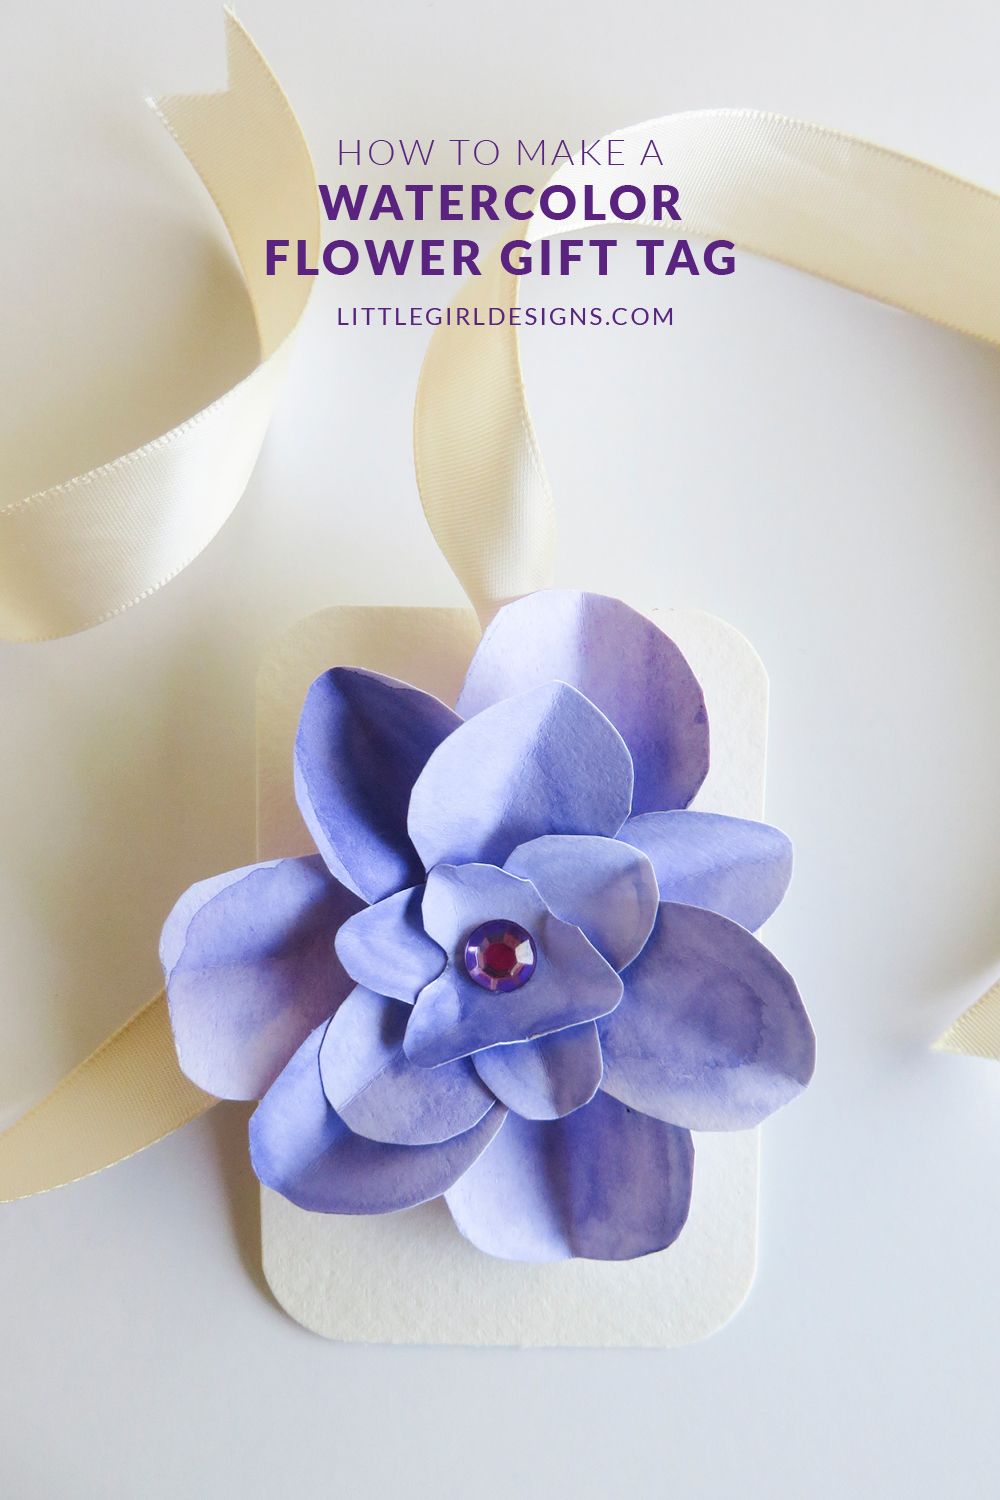 How to Make a Watercolor Flower Gift Tag - Guest post on CreativeKKids. Create a lovely gift tag that is perfect for weddings, Mother's Day, birthdays, and baby showers @littlegirldesigns.com